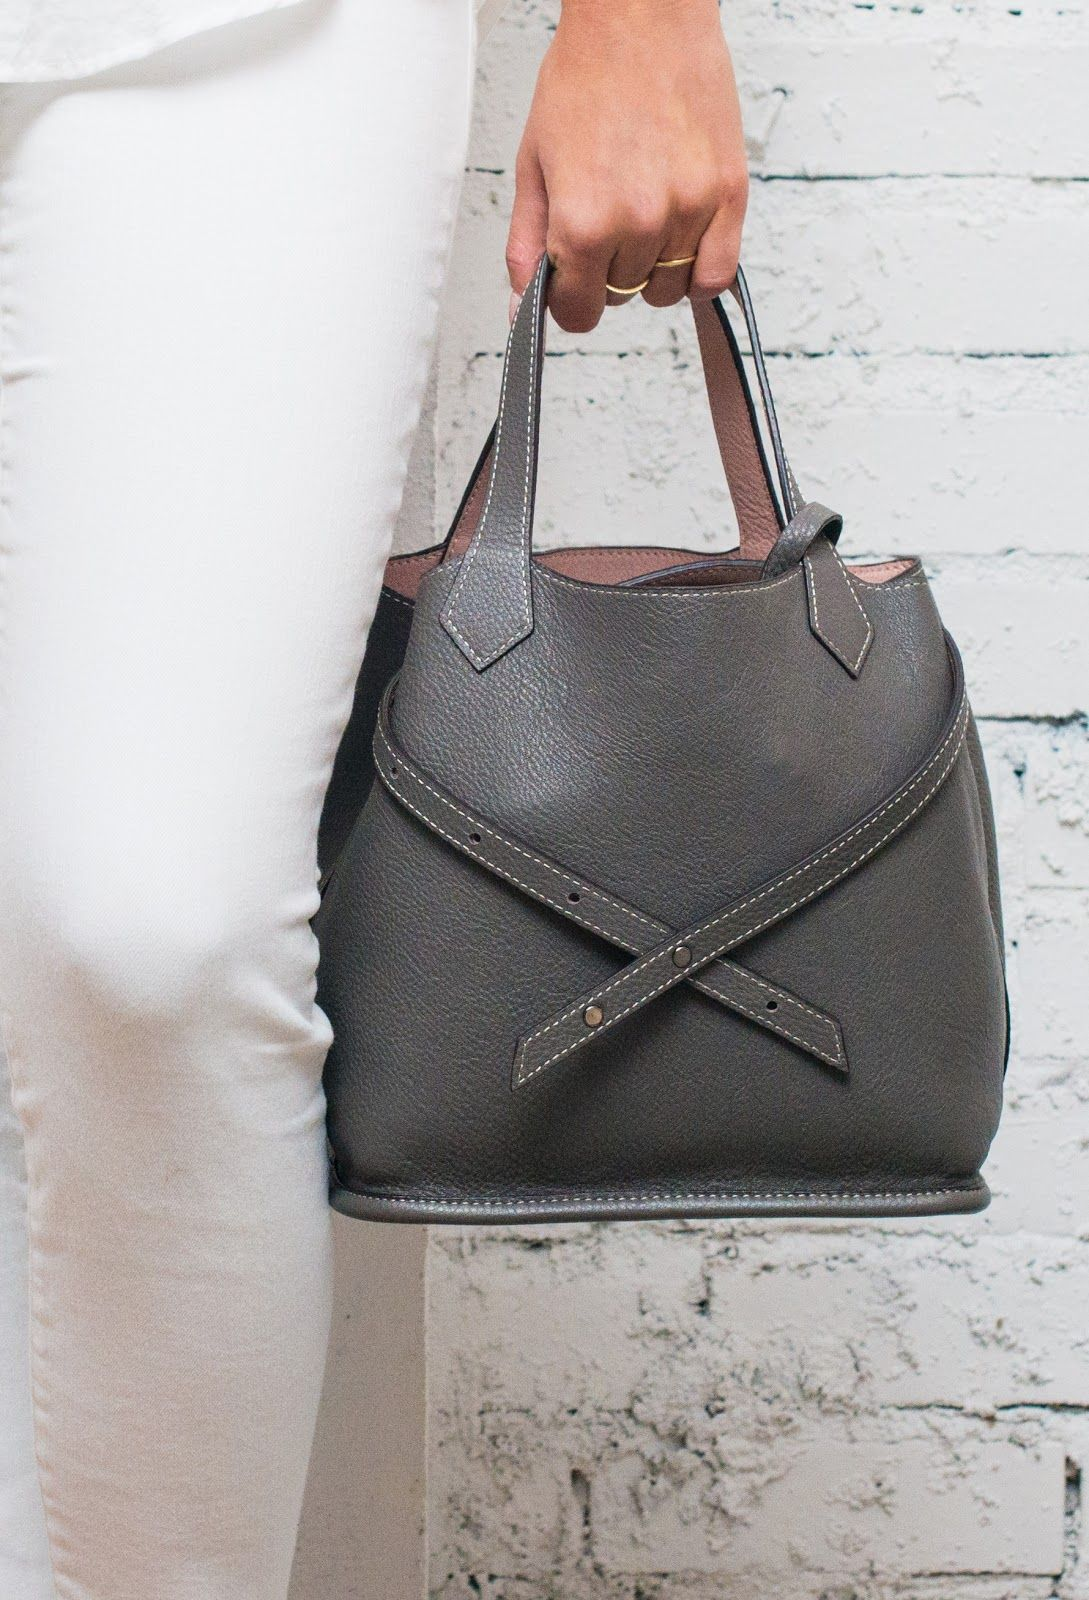 b407d27003a7 LEATHER + STITCHES  Palla Handbags - Handcrafted Quality Leather Handbags - Minimal  design for the effortlessly cool chick.    Featured here  A-Bag Plus ...